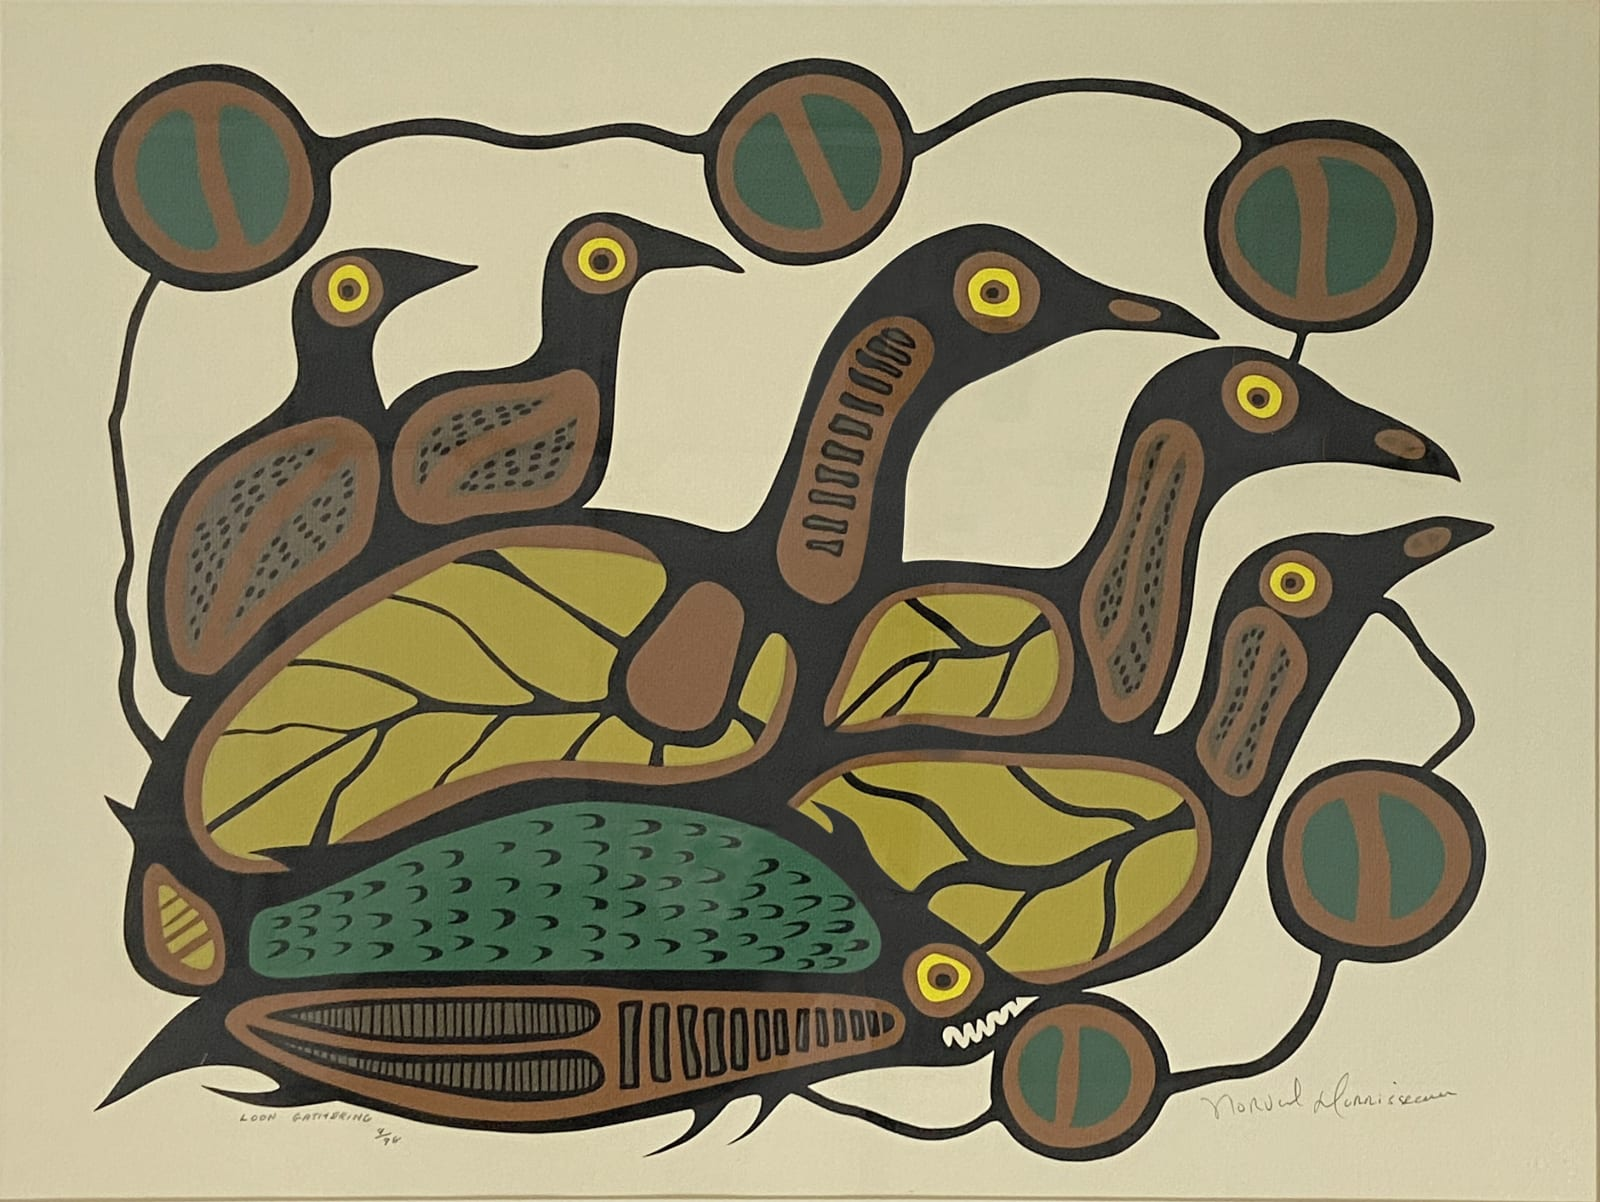 LOT 63 NORVAL MORRISSEAU, C.M. (1931-2007) ANISHINAABE Loon Gathering silkscreen, framed, sight: 19 1/4 x 25 3/4 in (48.9 x 65.4 cm) ESTIMATE: $400 — $600 PRICE REALIZED: $360